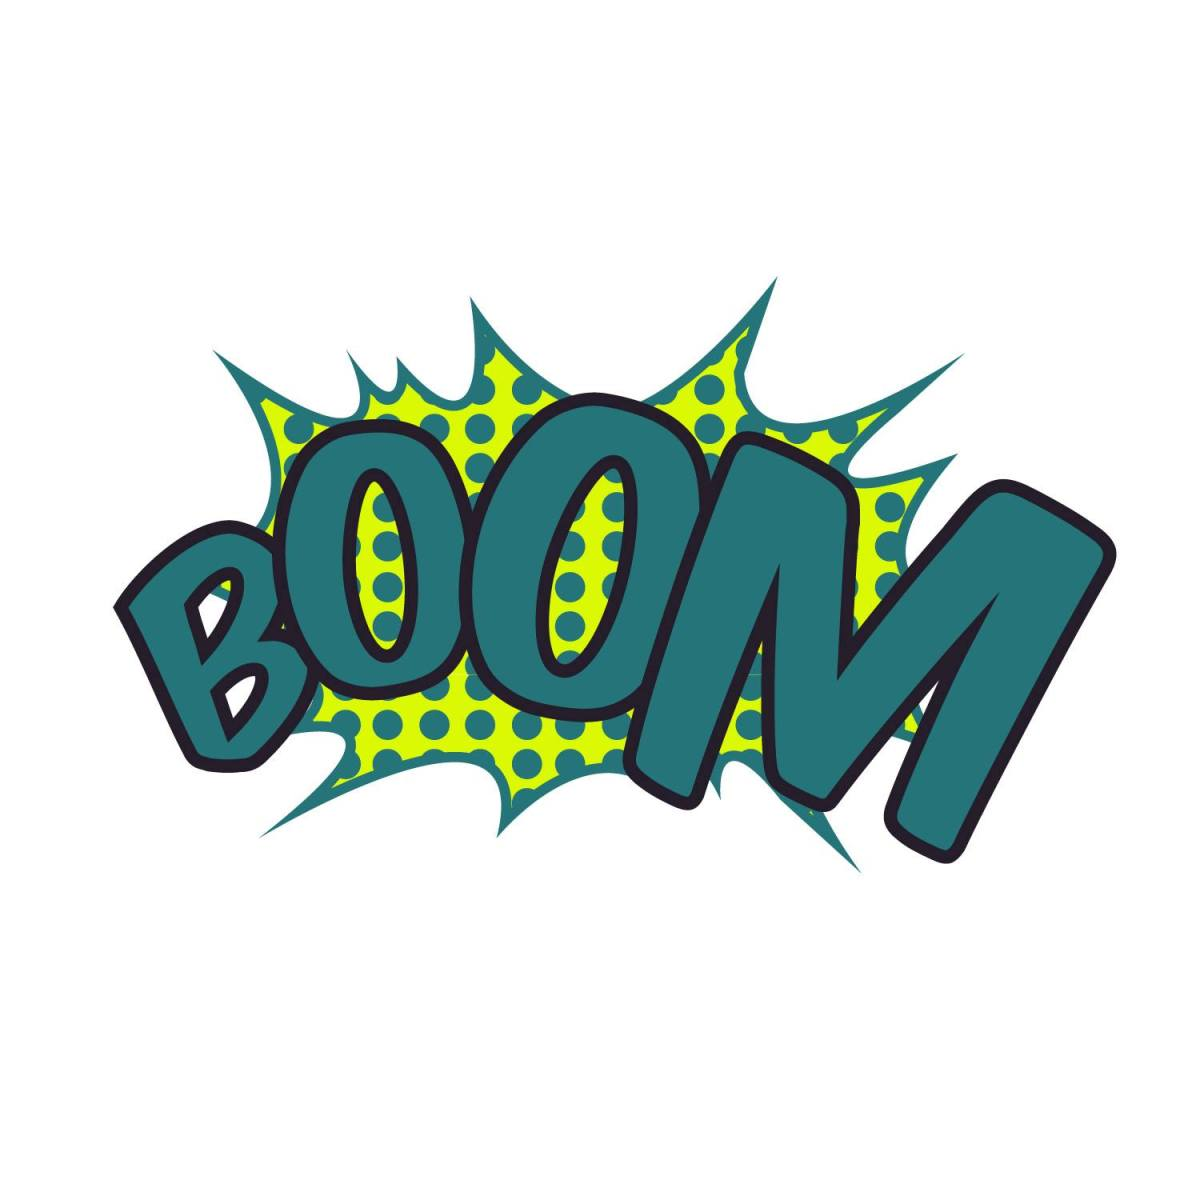 Bringing BOOM to You